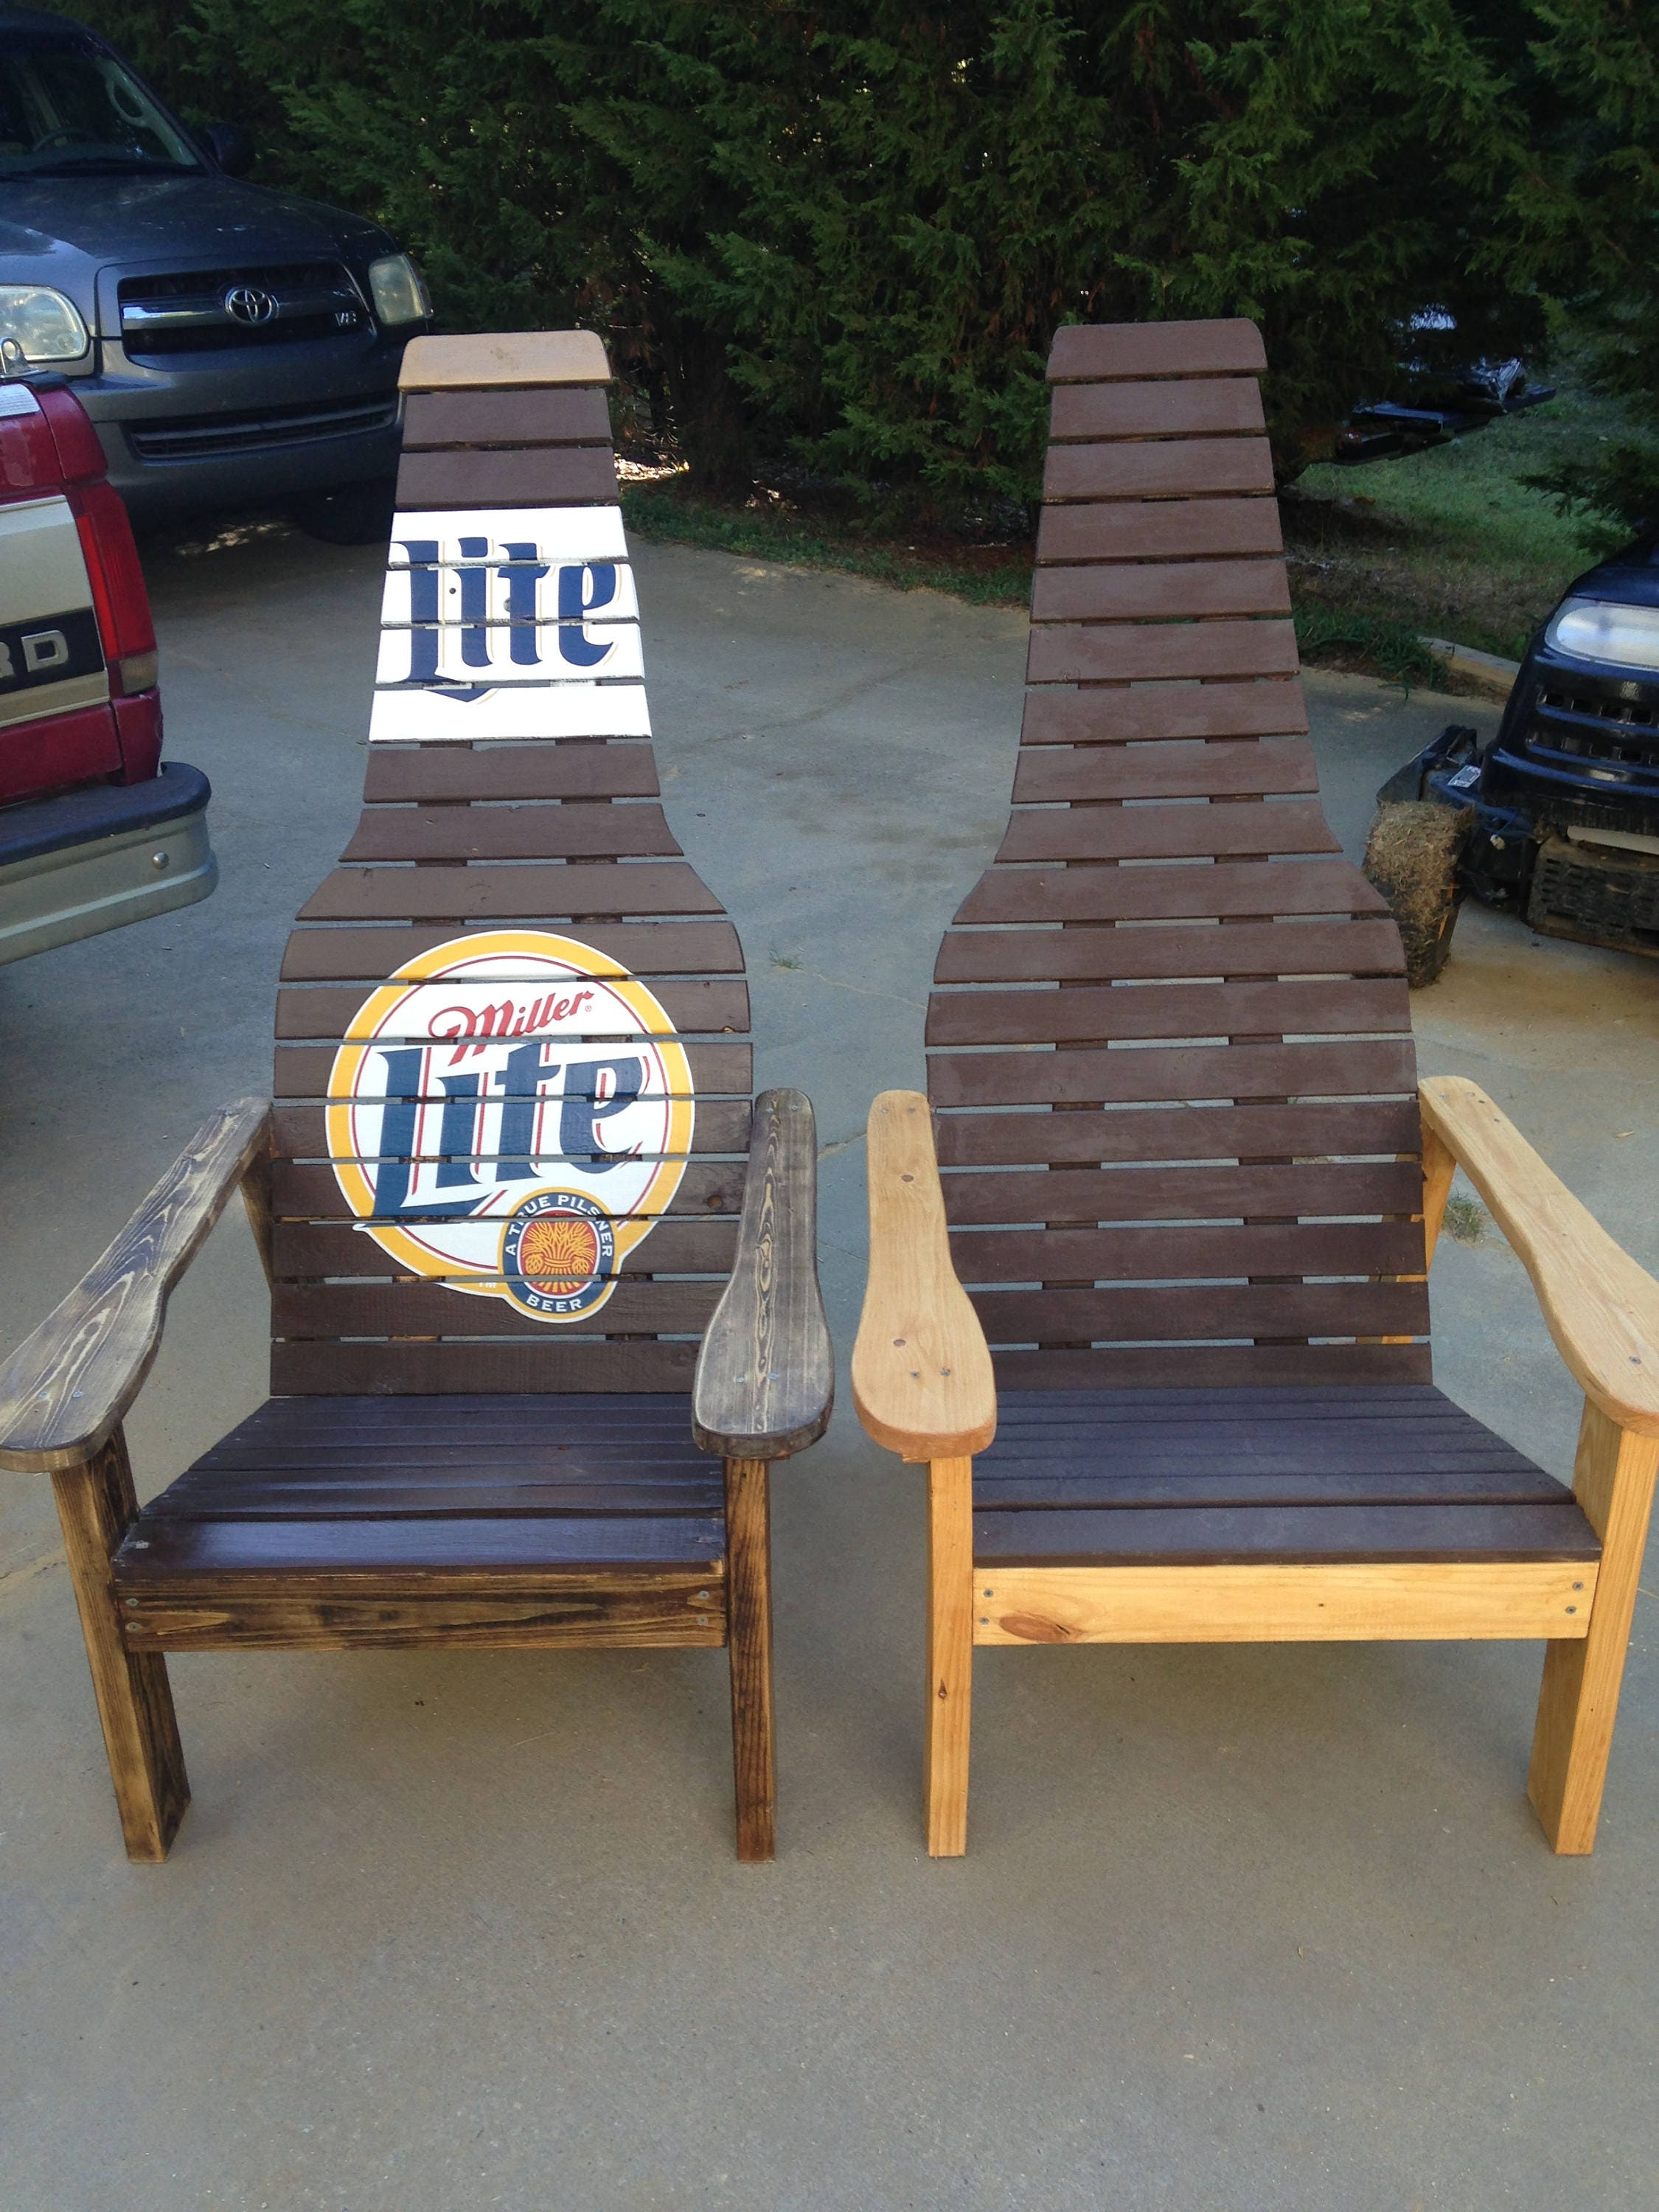 Outdoor furniture Wood chair Beer bottle Adirondack chair